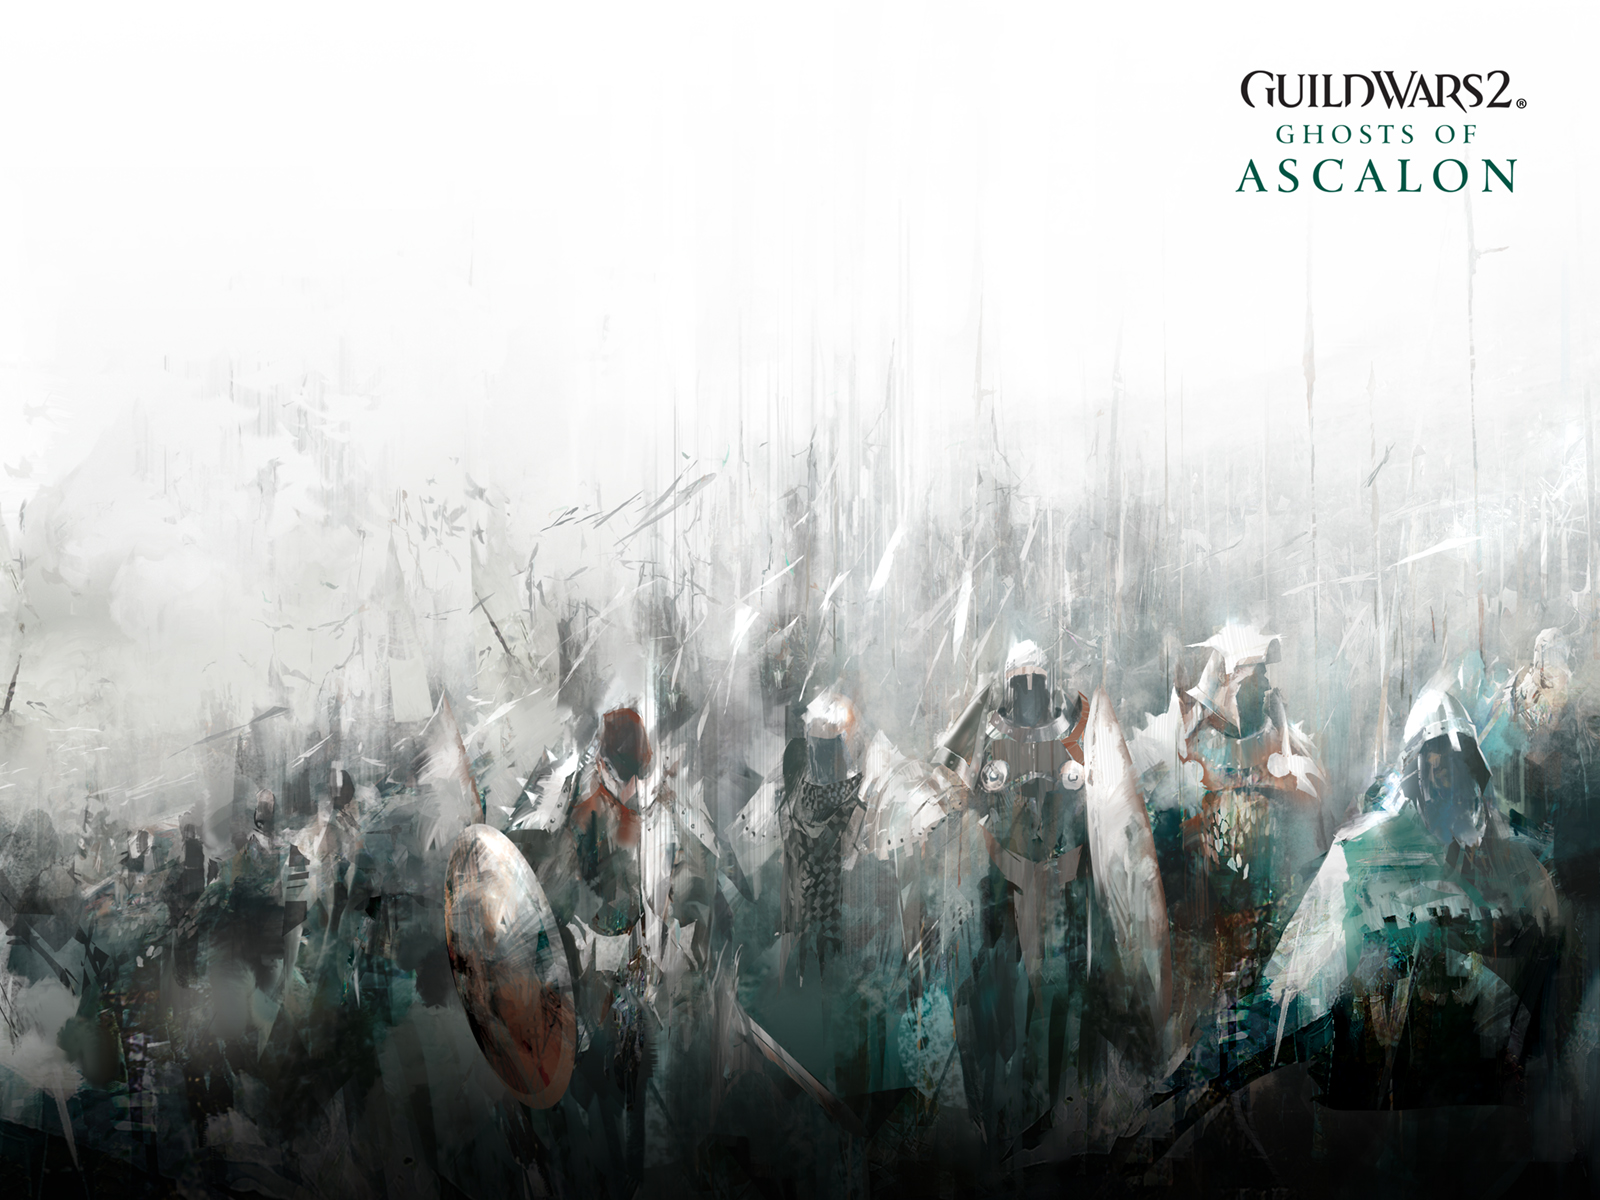 ghosts ascalon guild wars 2 wallpaper ghosts ascalon wallpaper ghosts 1600x1200